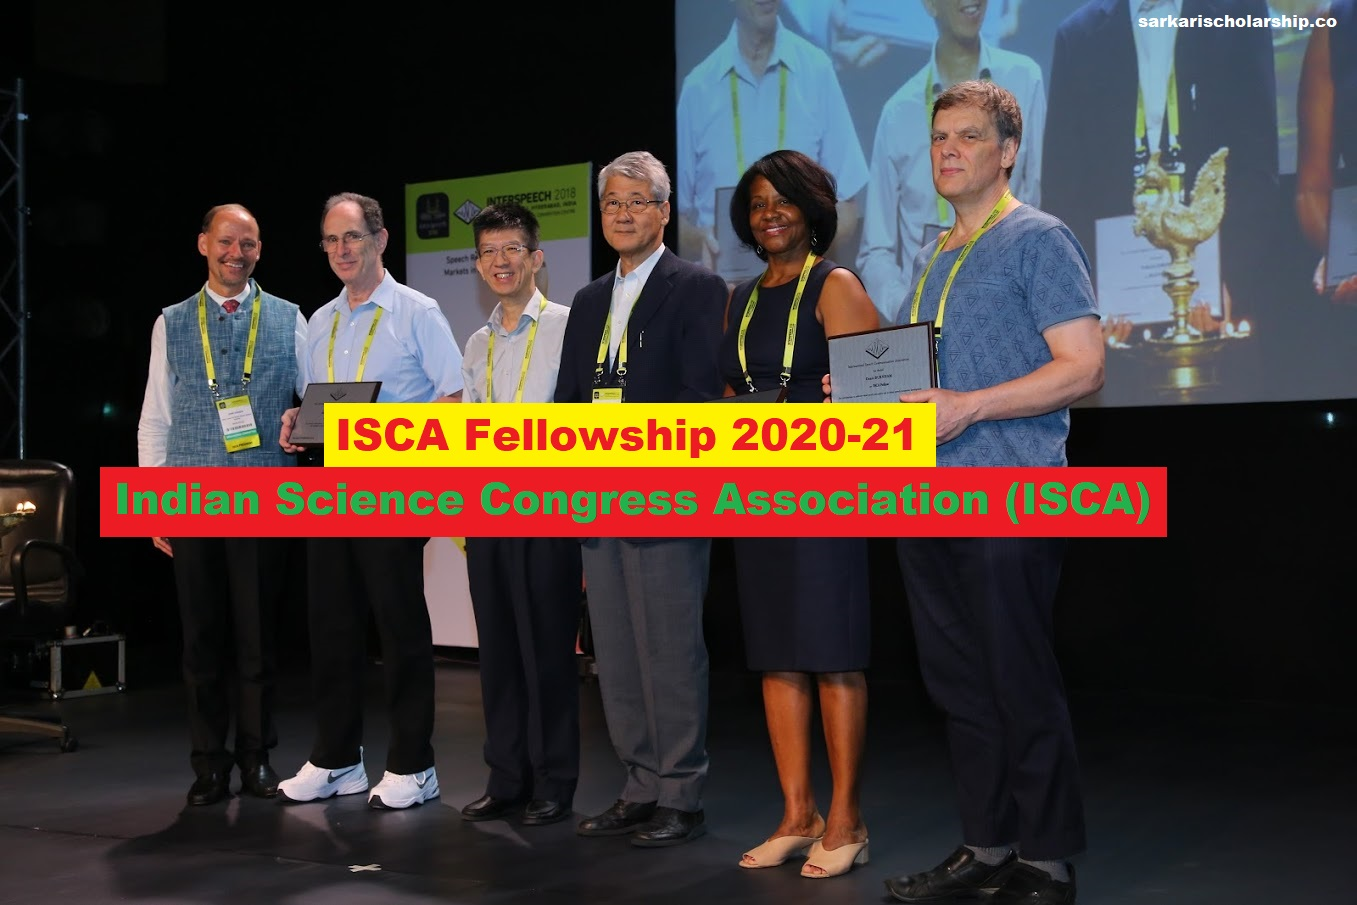 ISCA Fellowship 2020-21